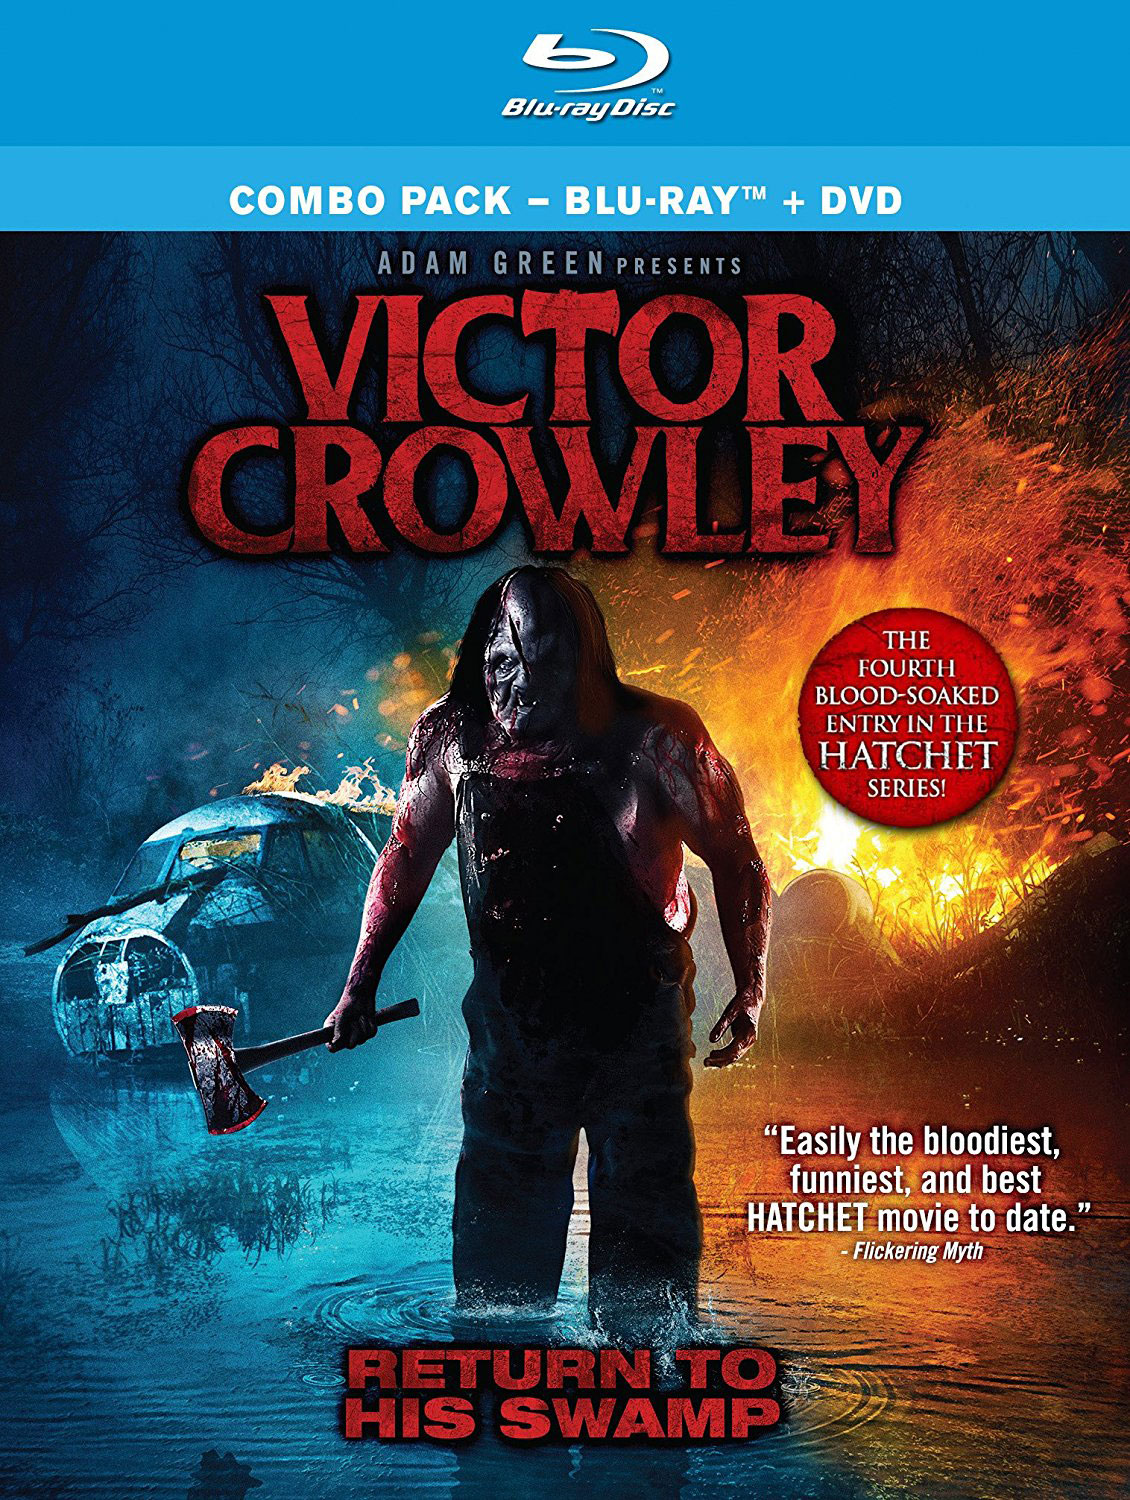 victor crowley blu ray - Victor Crowley - Win a Copy of the Blu-ray Along With a Signed Poster